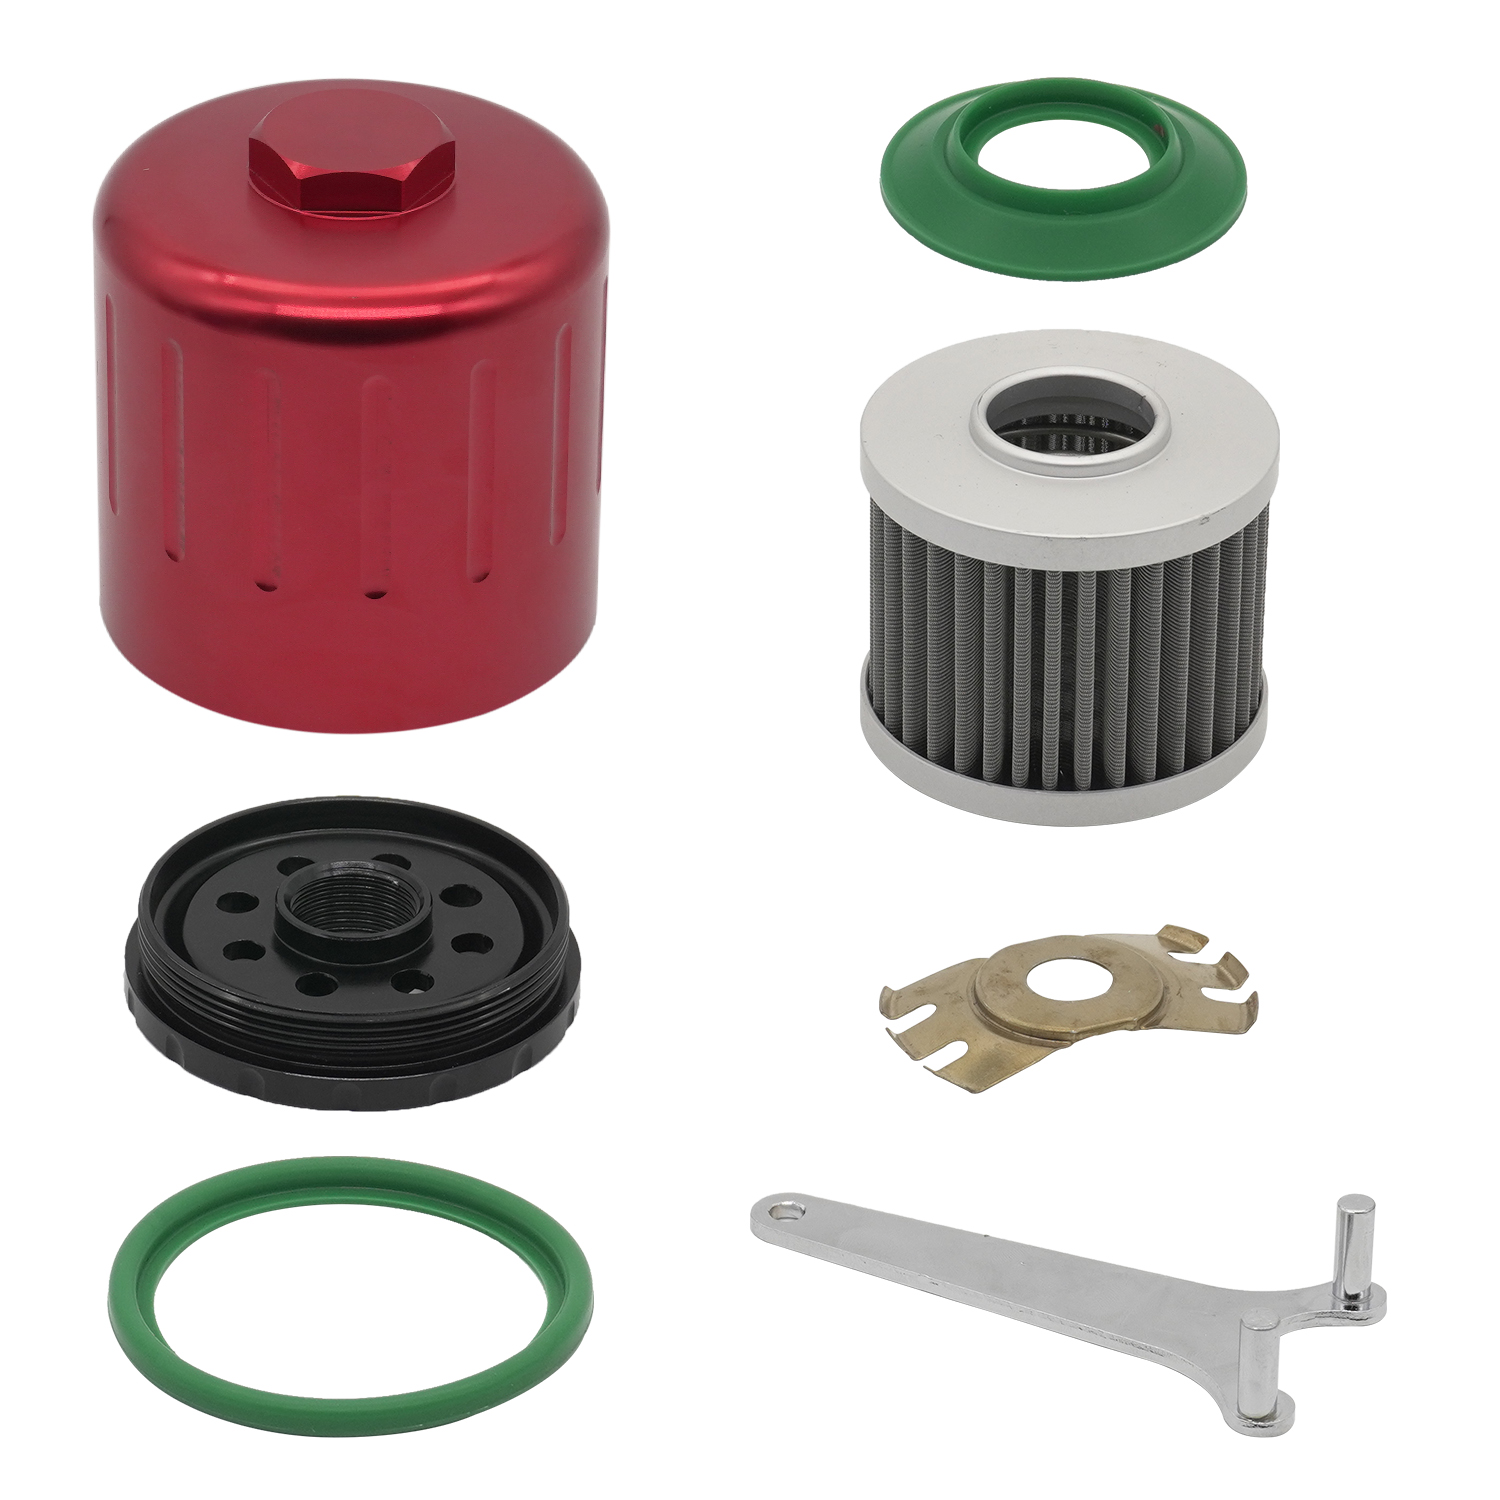 Oil Filter 15400 Oil Filters 304 Stainless Steel Filter Washable Reusable M20x1.5 15400-RAF-T01 15400-PLC-004